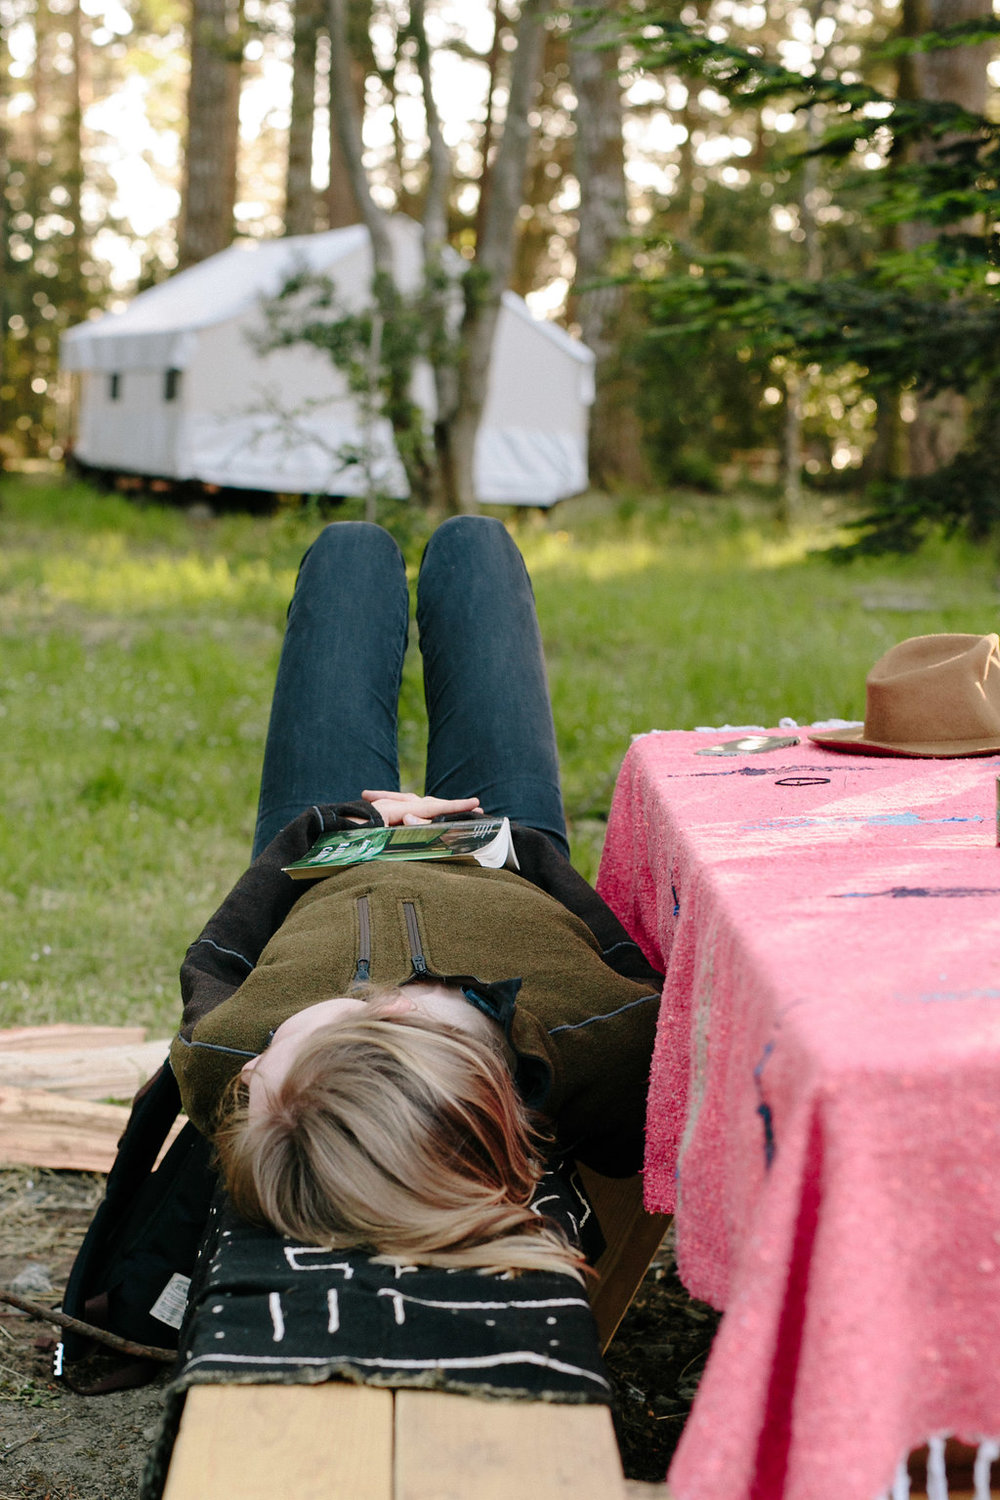 A young woman rests on a picnic table bench with open book on her belly.